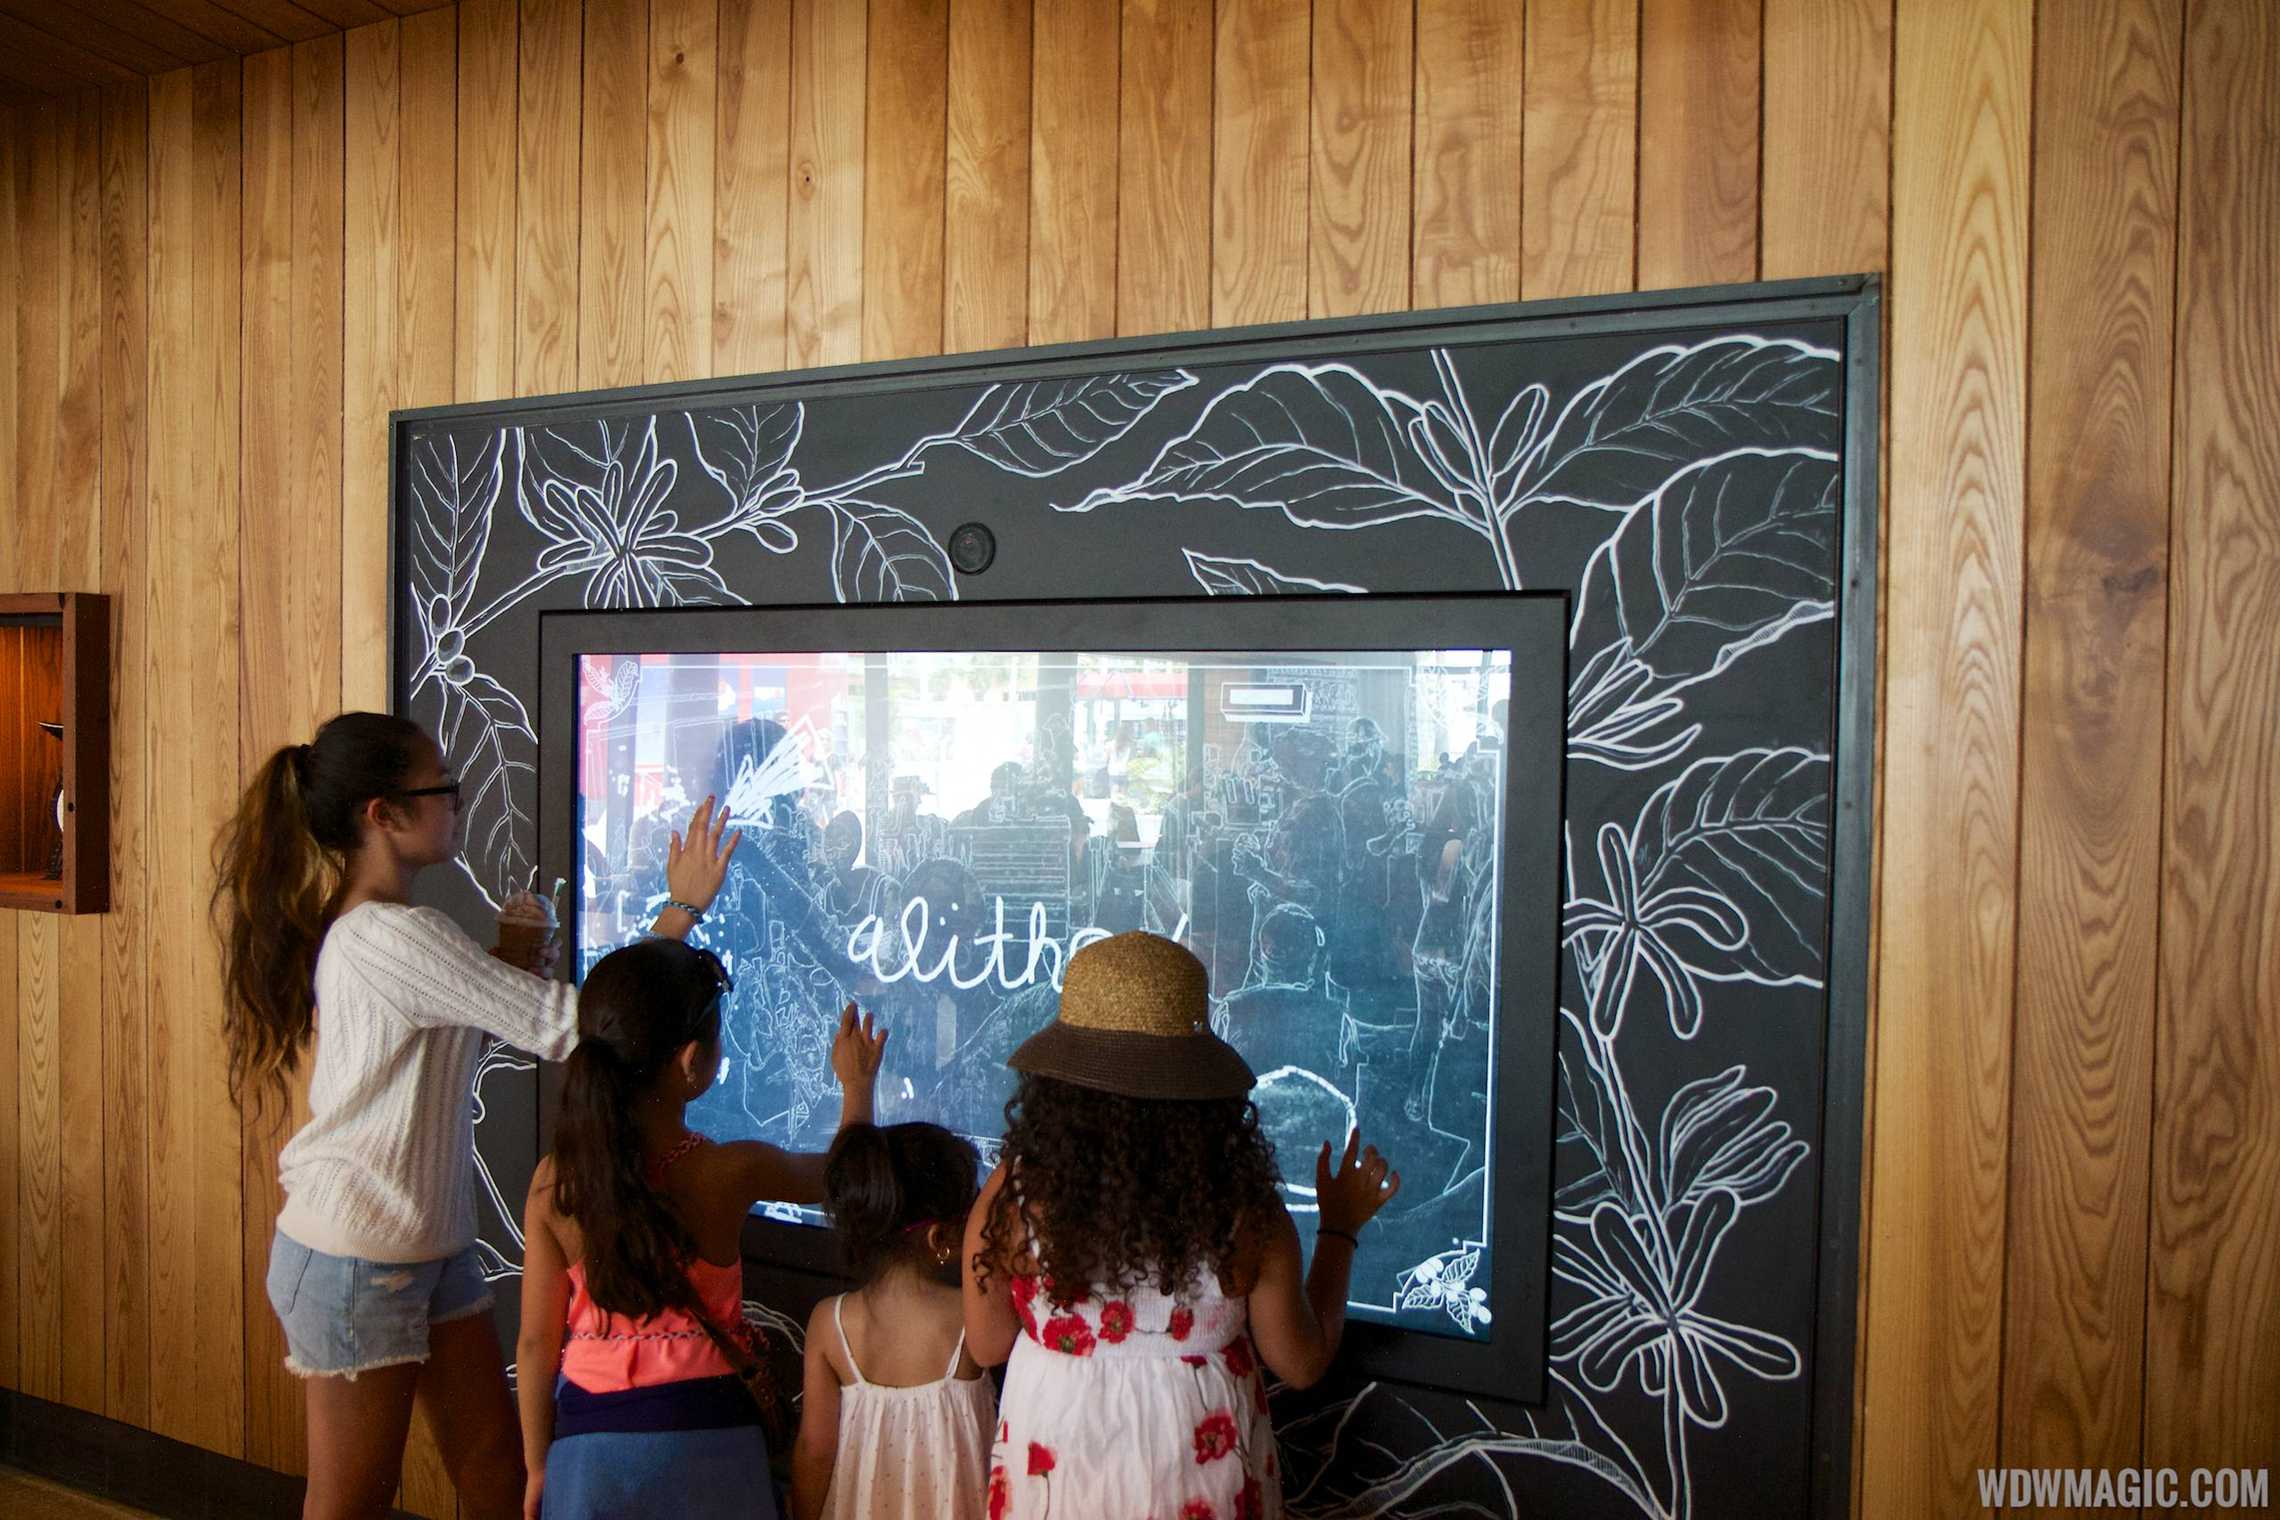 Touch screen panel linked to Disneyland